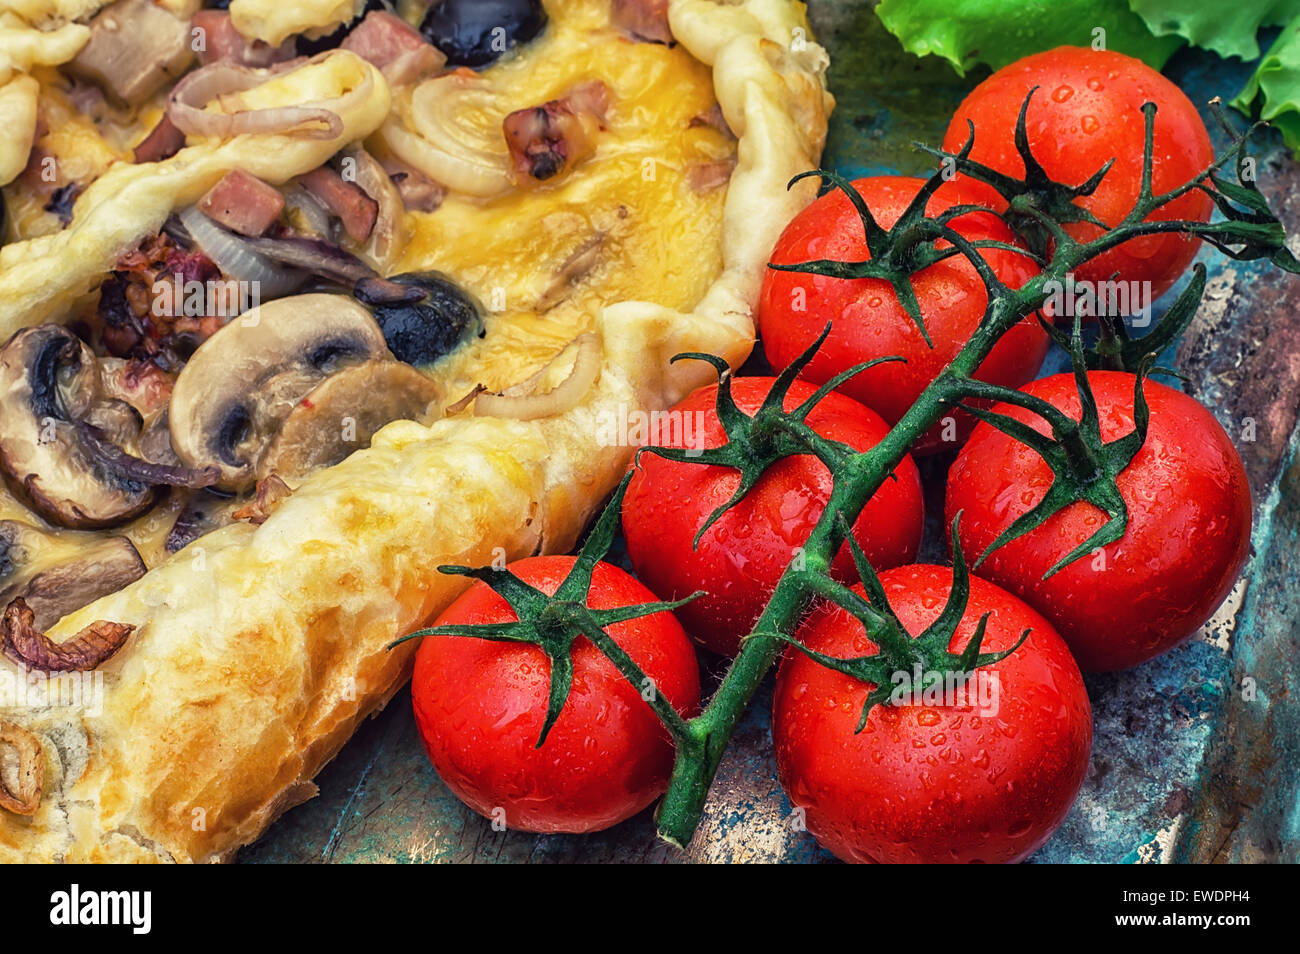 baked in the oven meat shawarma with vegetables in a rustic style.The image is tinted - Stock Image